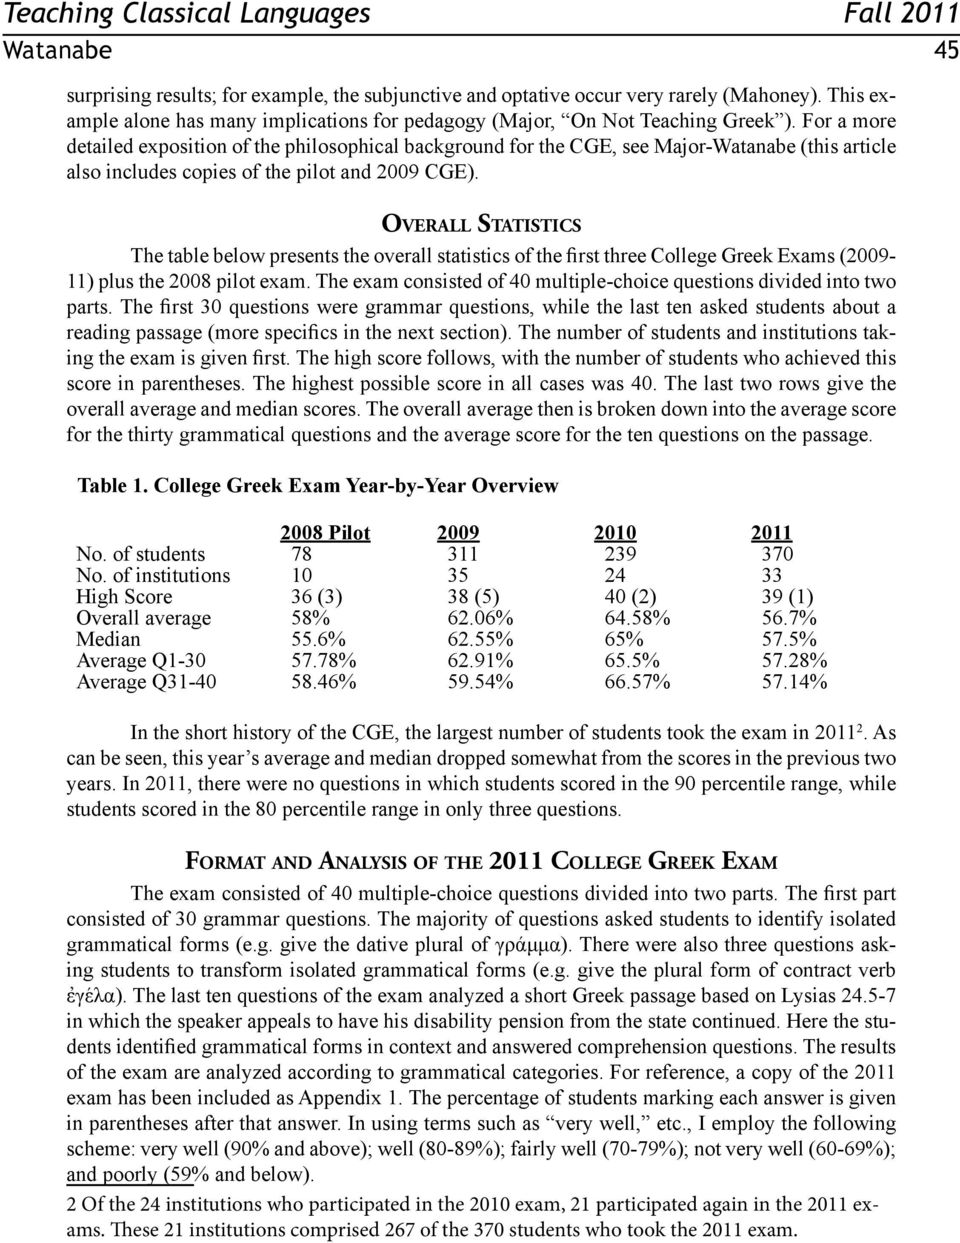 Overall Statistics The table below presents the overall statistics of the first three College Greek Exams (2009-11) plus the 2008 pilot exam.